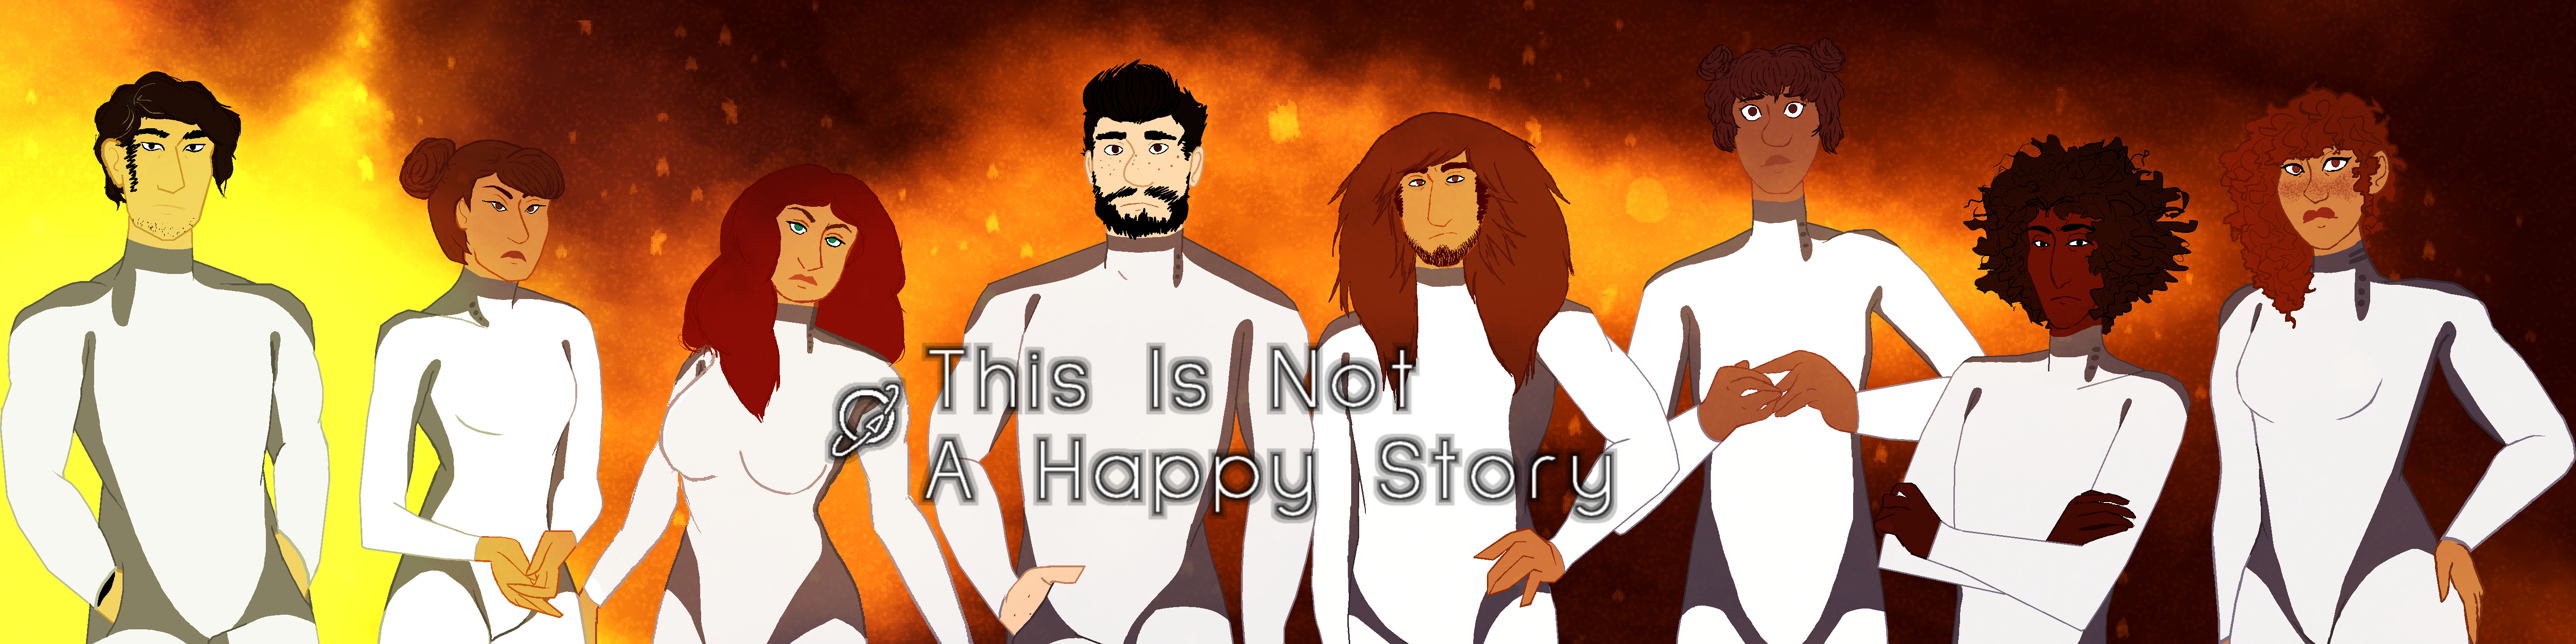 This Is Not A Happy Story (Demo)